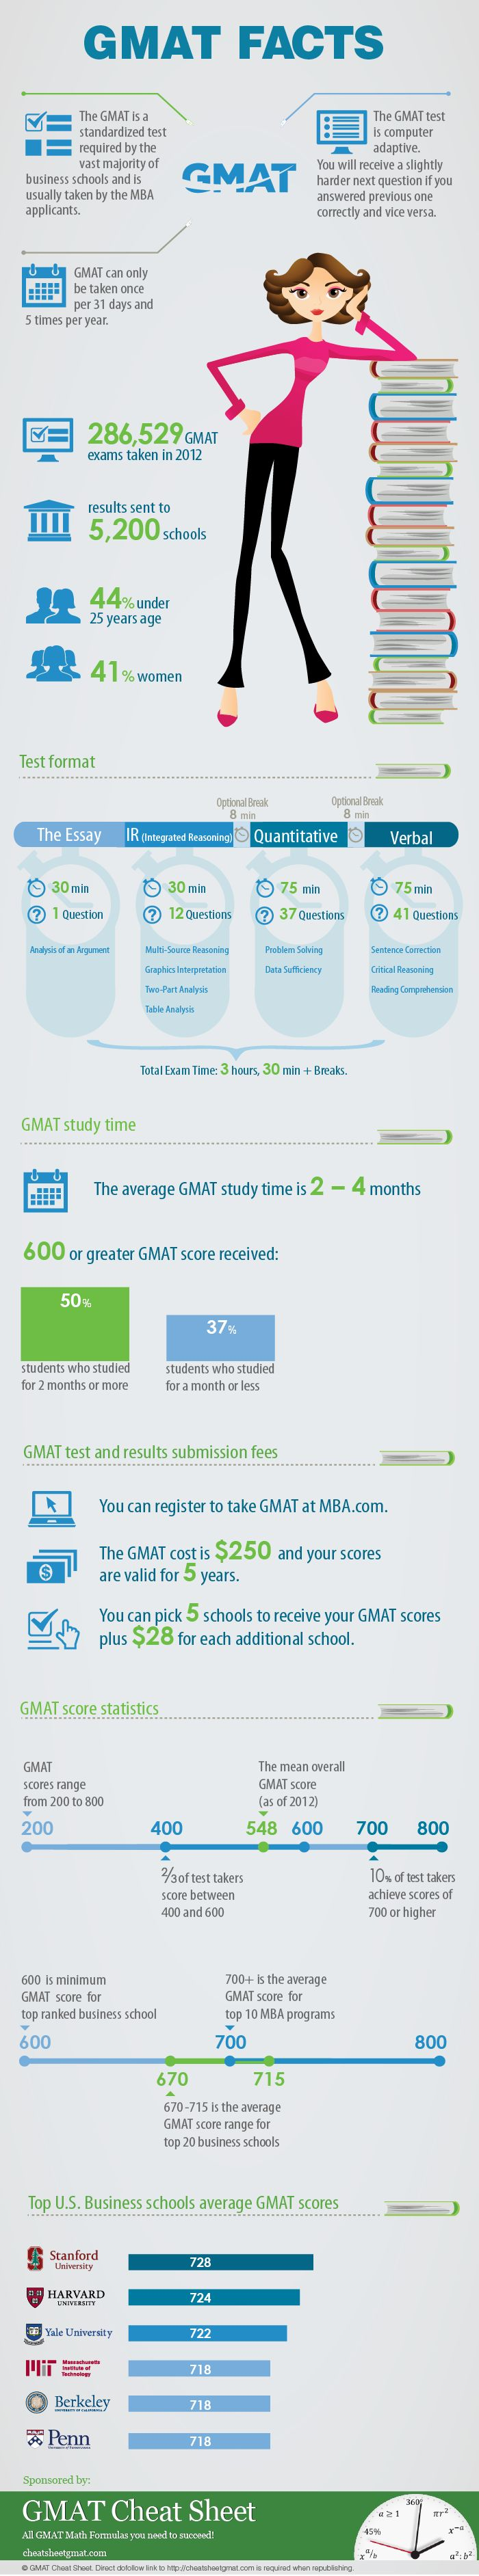 GMAT Facts is a nicely designed compilation of various information about GMAT in one place: test format, average scores, fees, study times, top U.S. schools scores, etc.